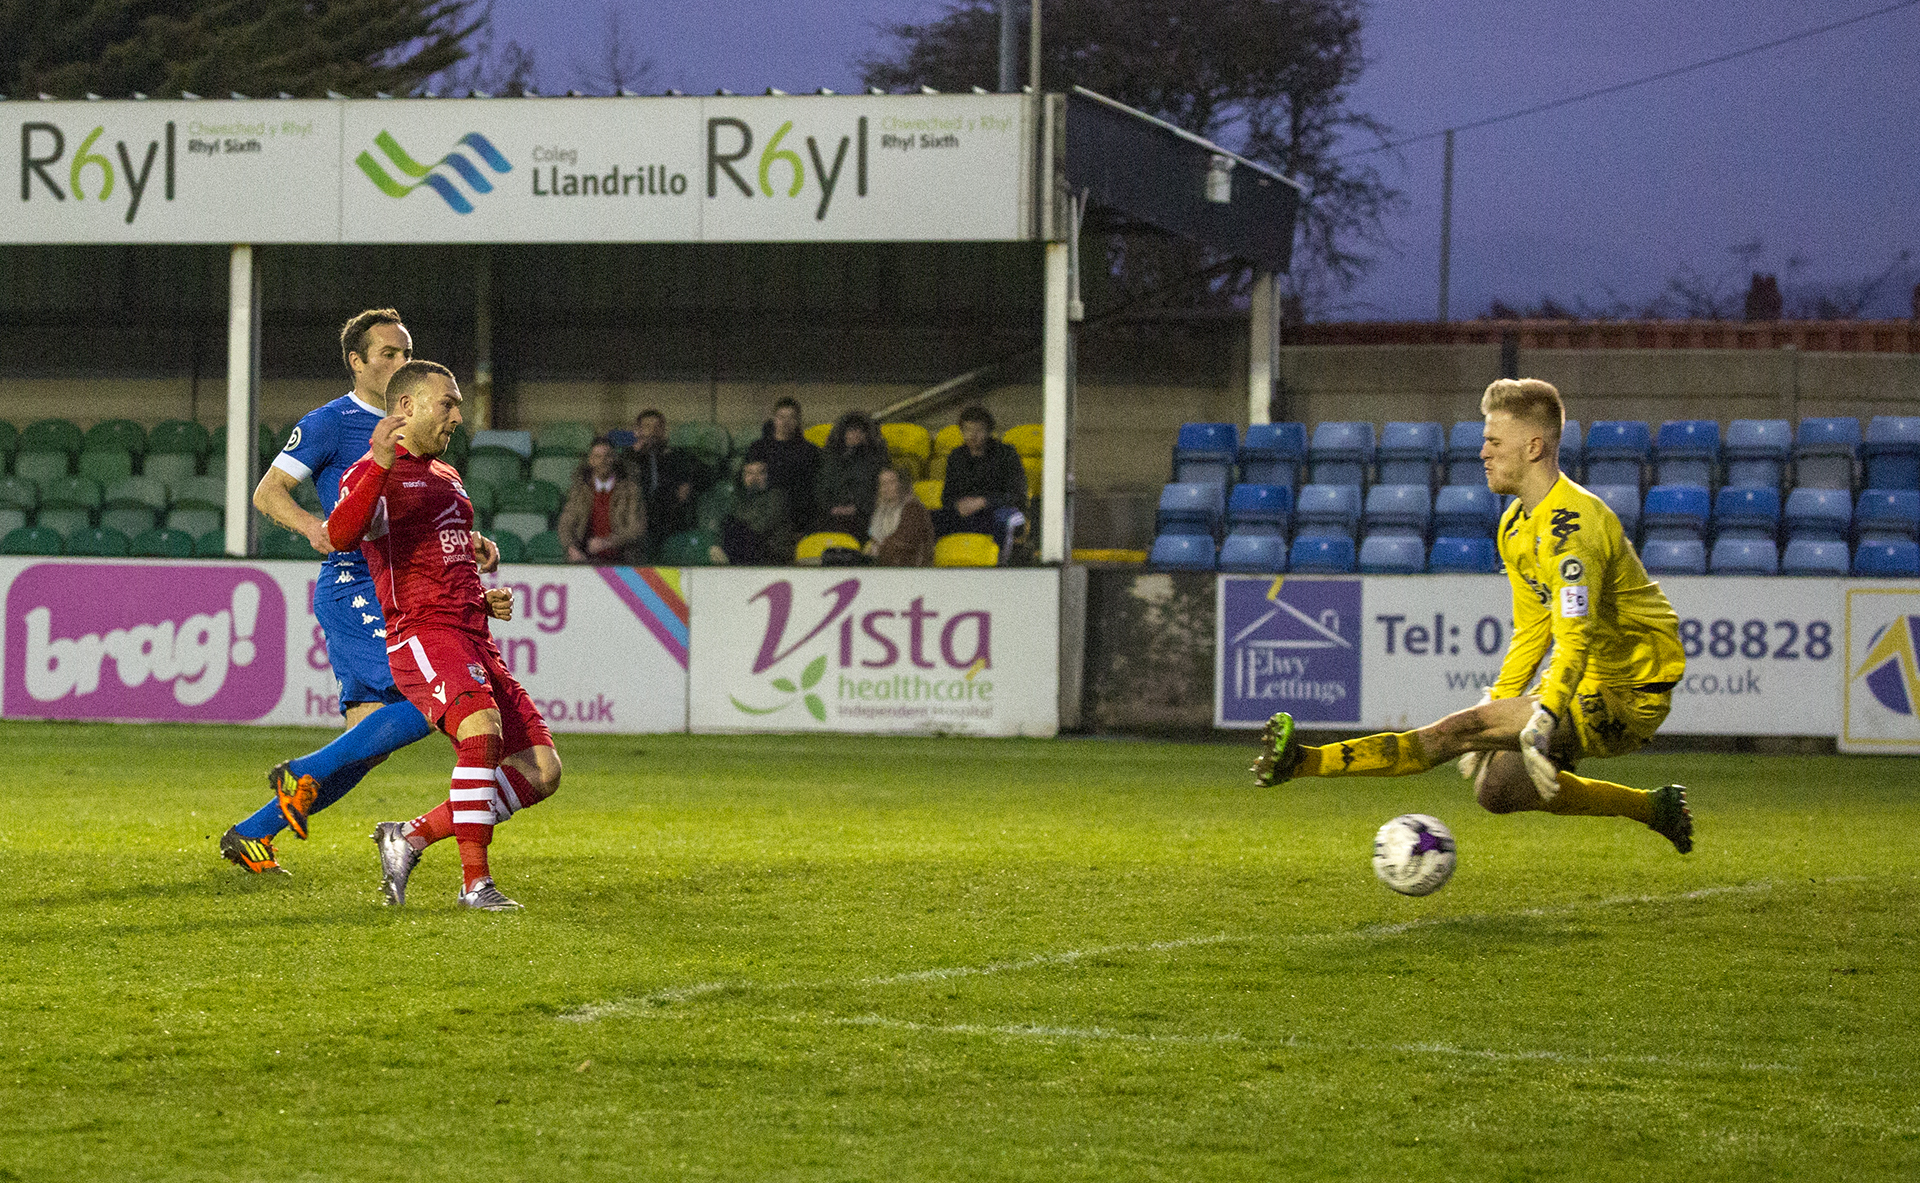 Ryan Wignall double The Nomads' lead - © NCM Media